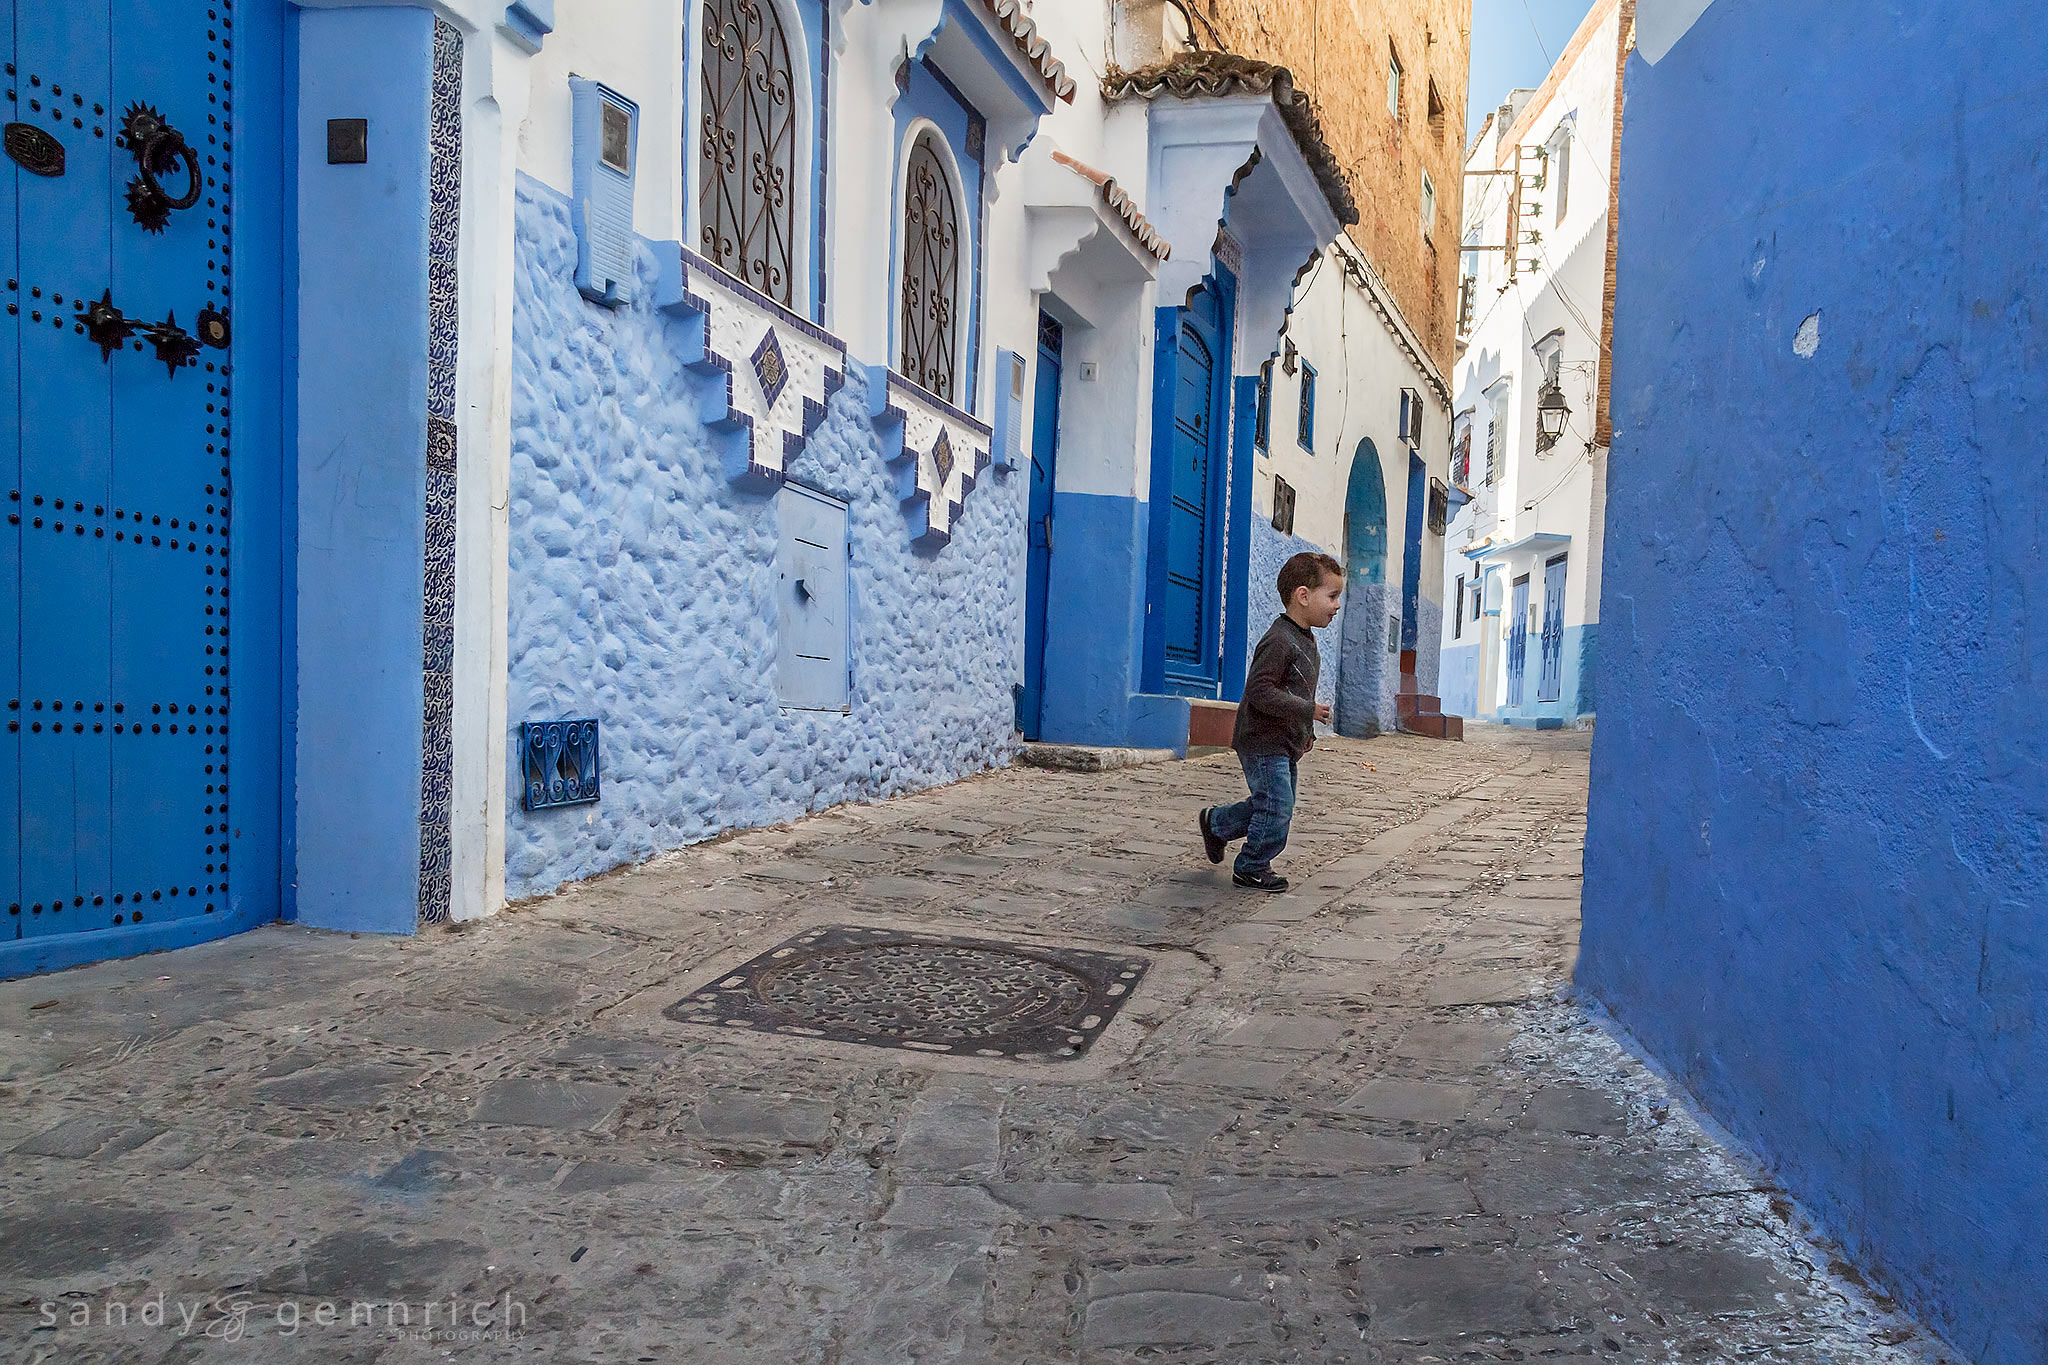 Photograph At Play-Chefchaouen Medina-Morocco by Sandy Gennrich on 500px